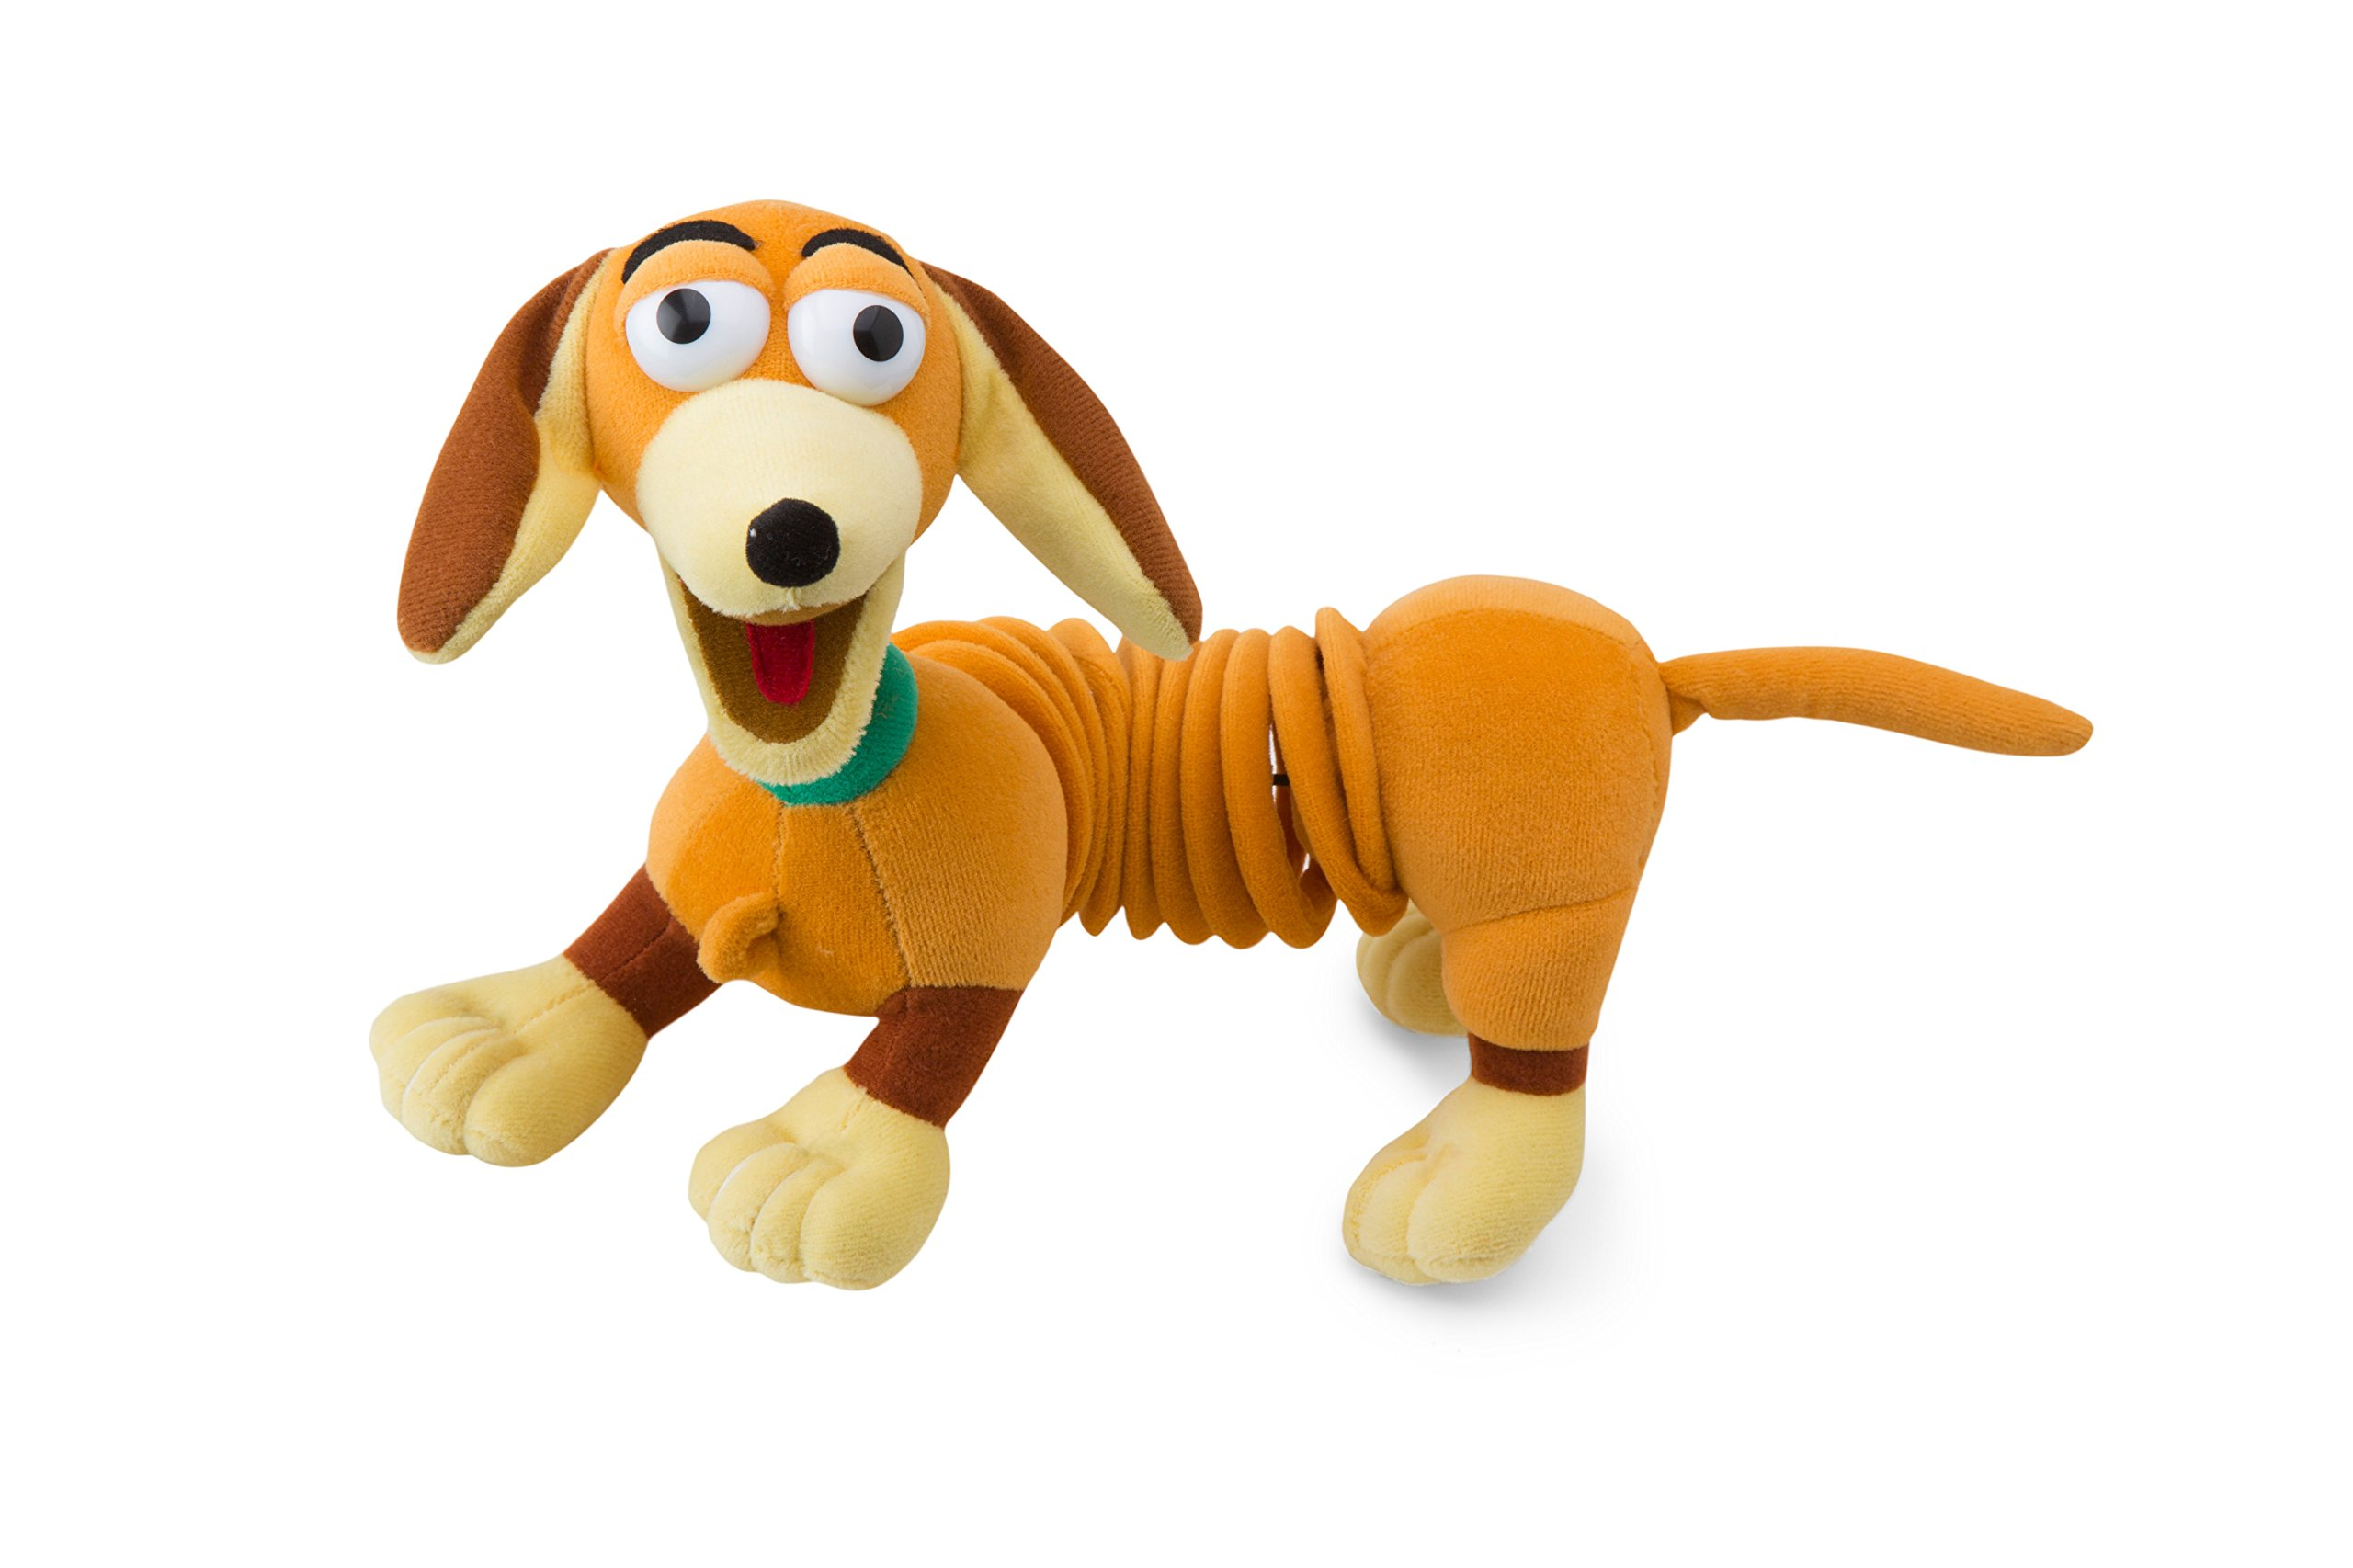 Disney Pixar Toy Story Slinky Dog Jr Plush by Slinky (Image #4)